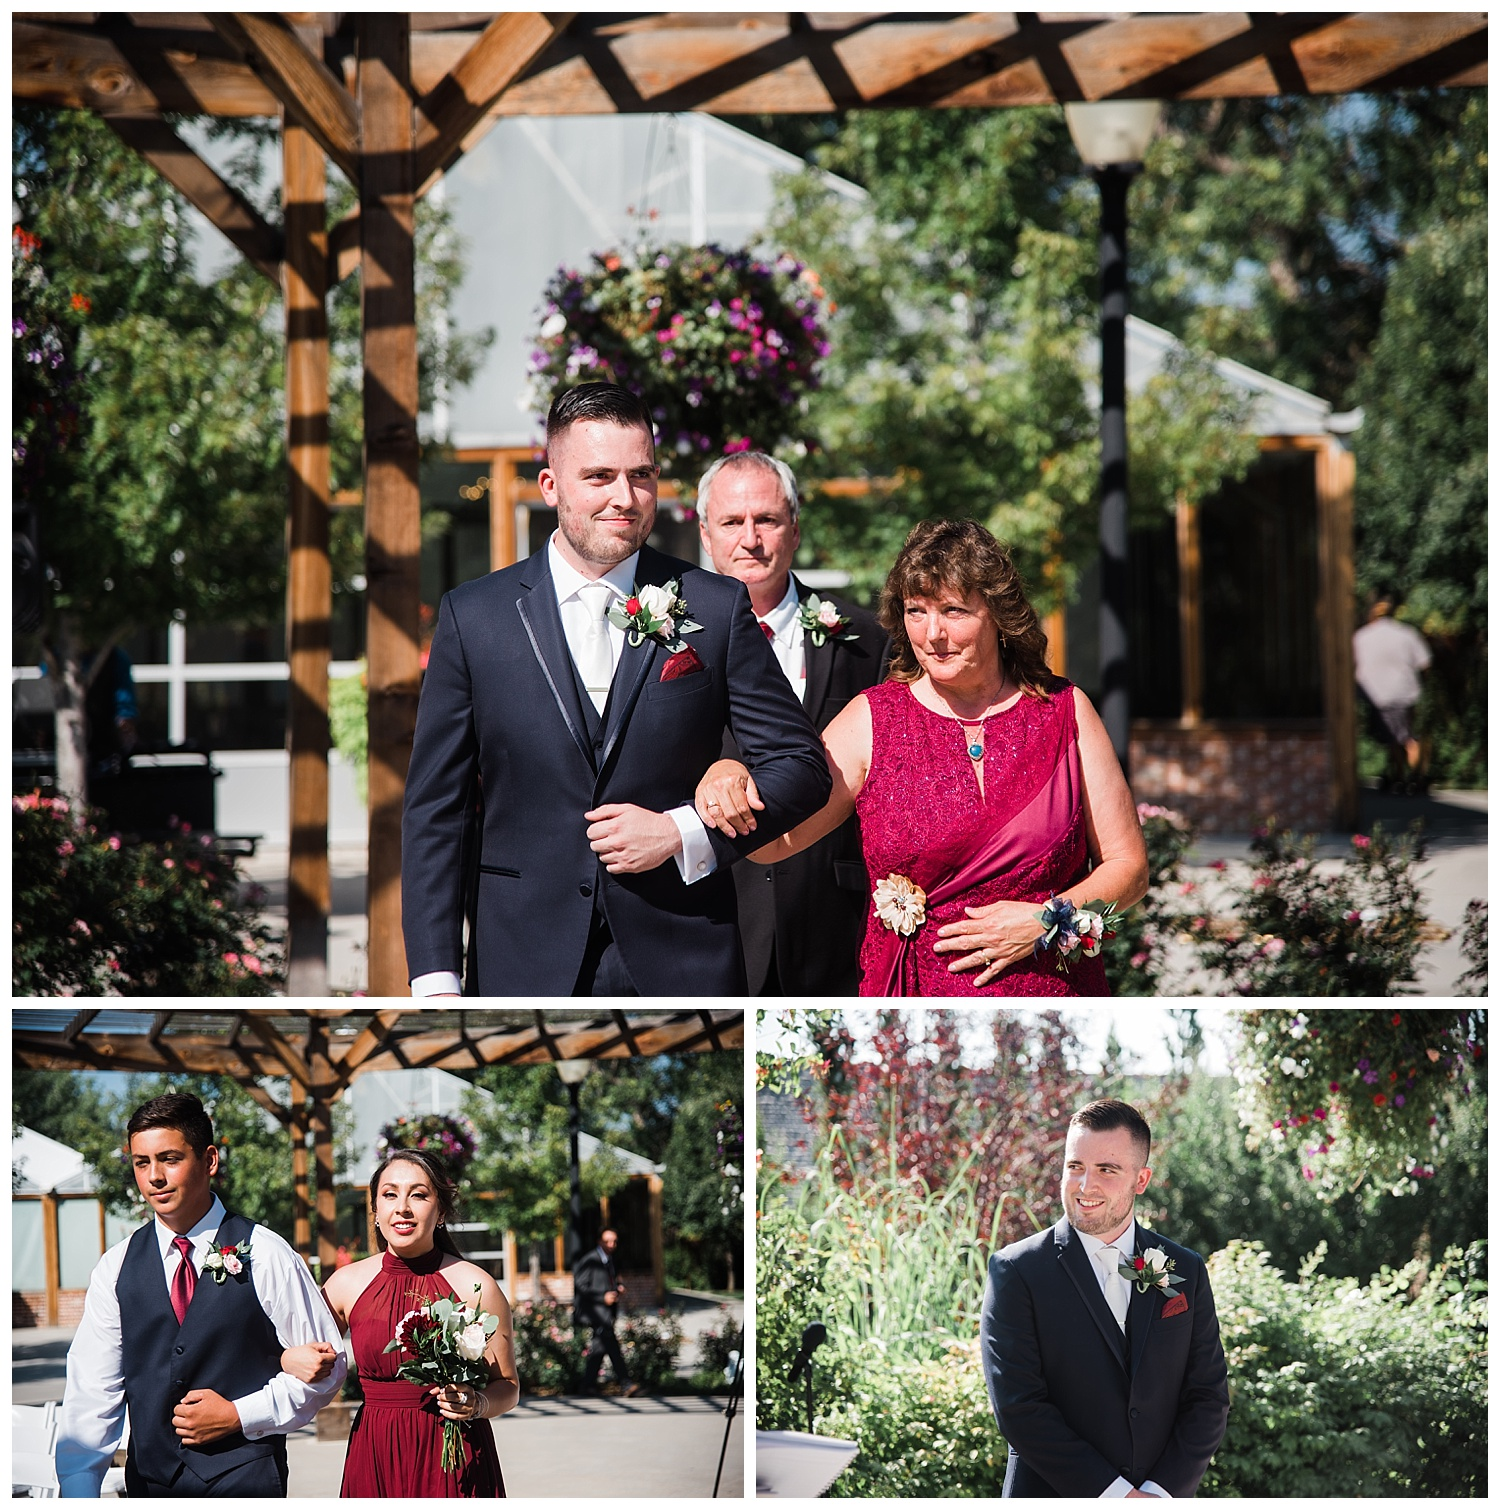 Brookside_Gardens_Colorado_Wedding_Photography_Apollo_Fields_09.jpg